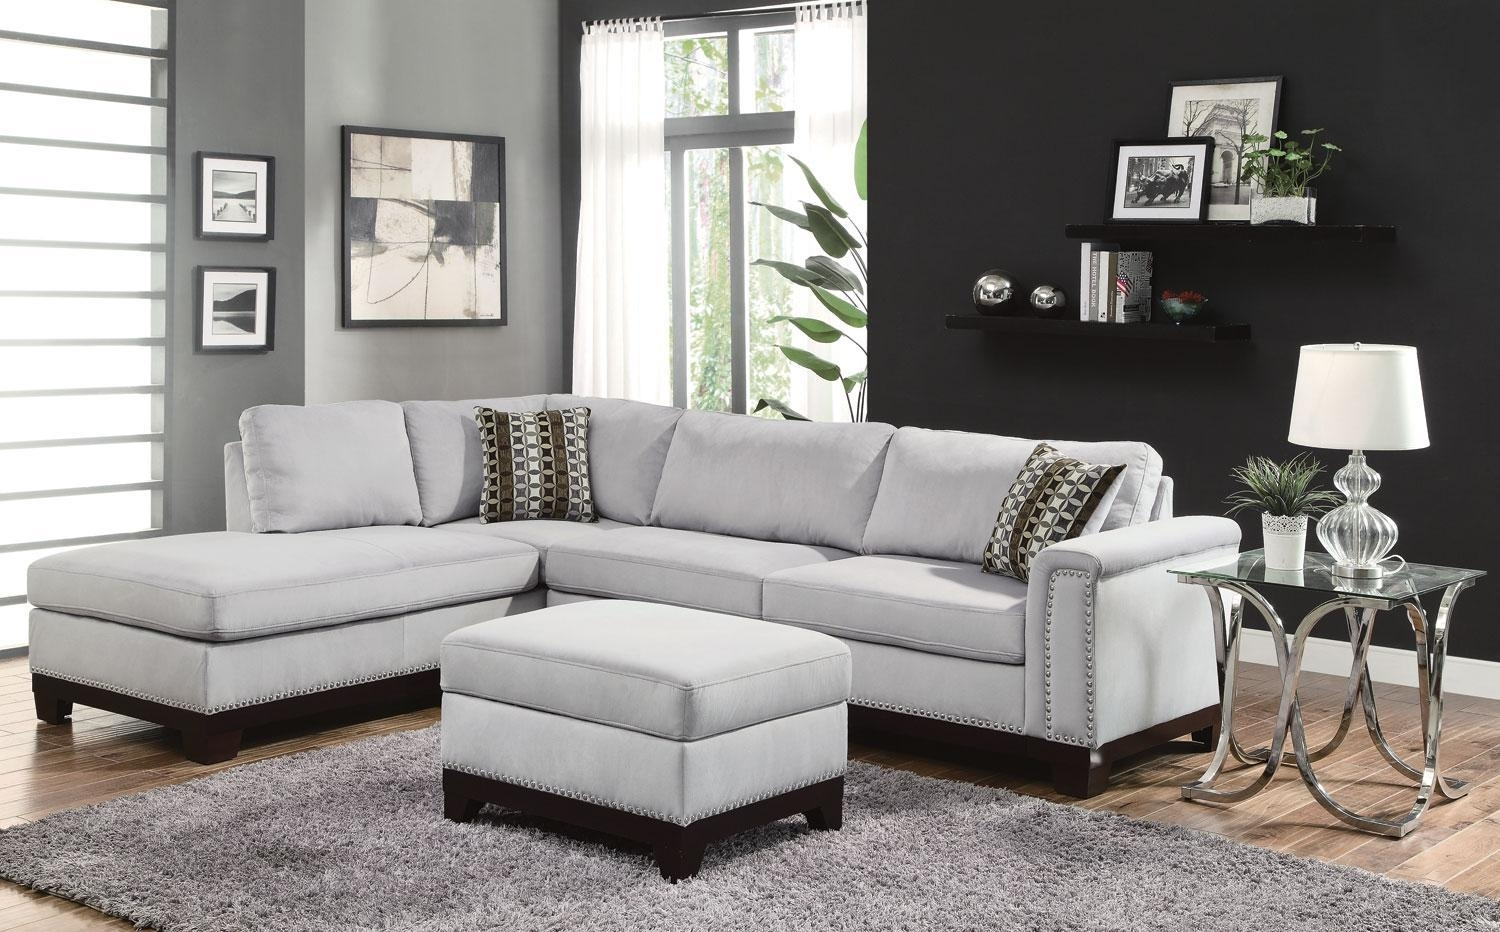 Sectional Sofa With Nailhead Trim | Best Sofas Ideas – Sofascouch Pertaining To Sectional Sofas With Nailhead Trim (View 9 of 10)